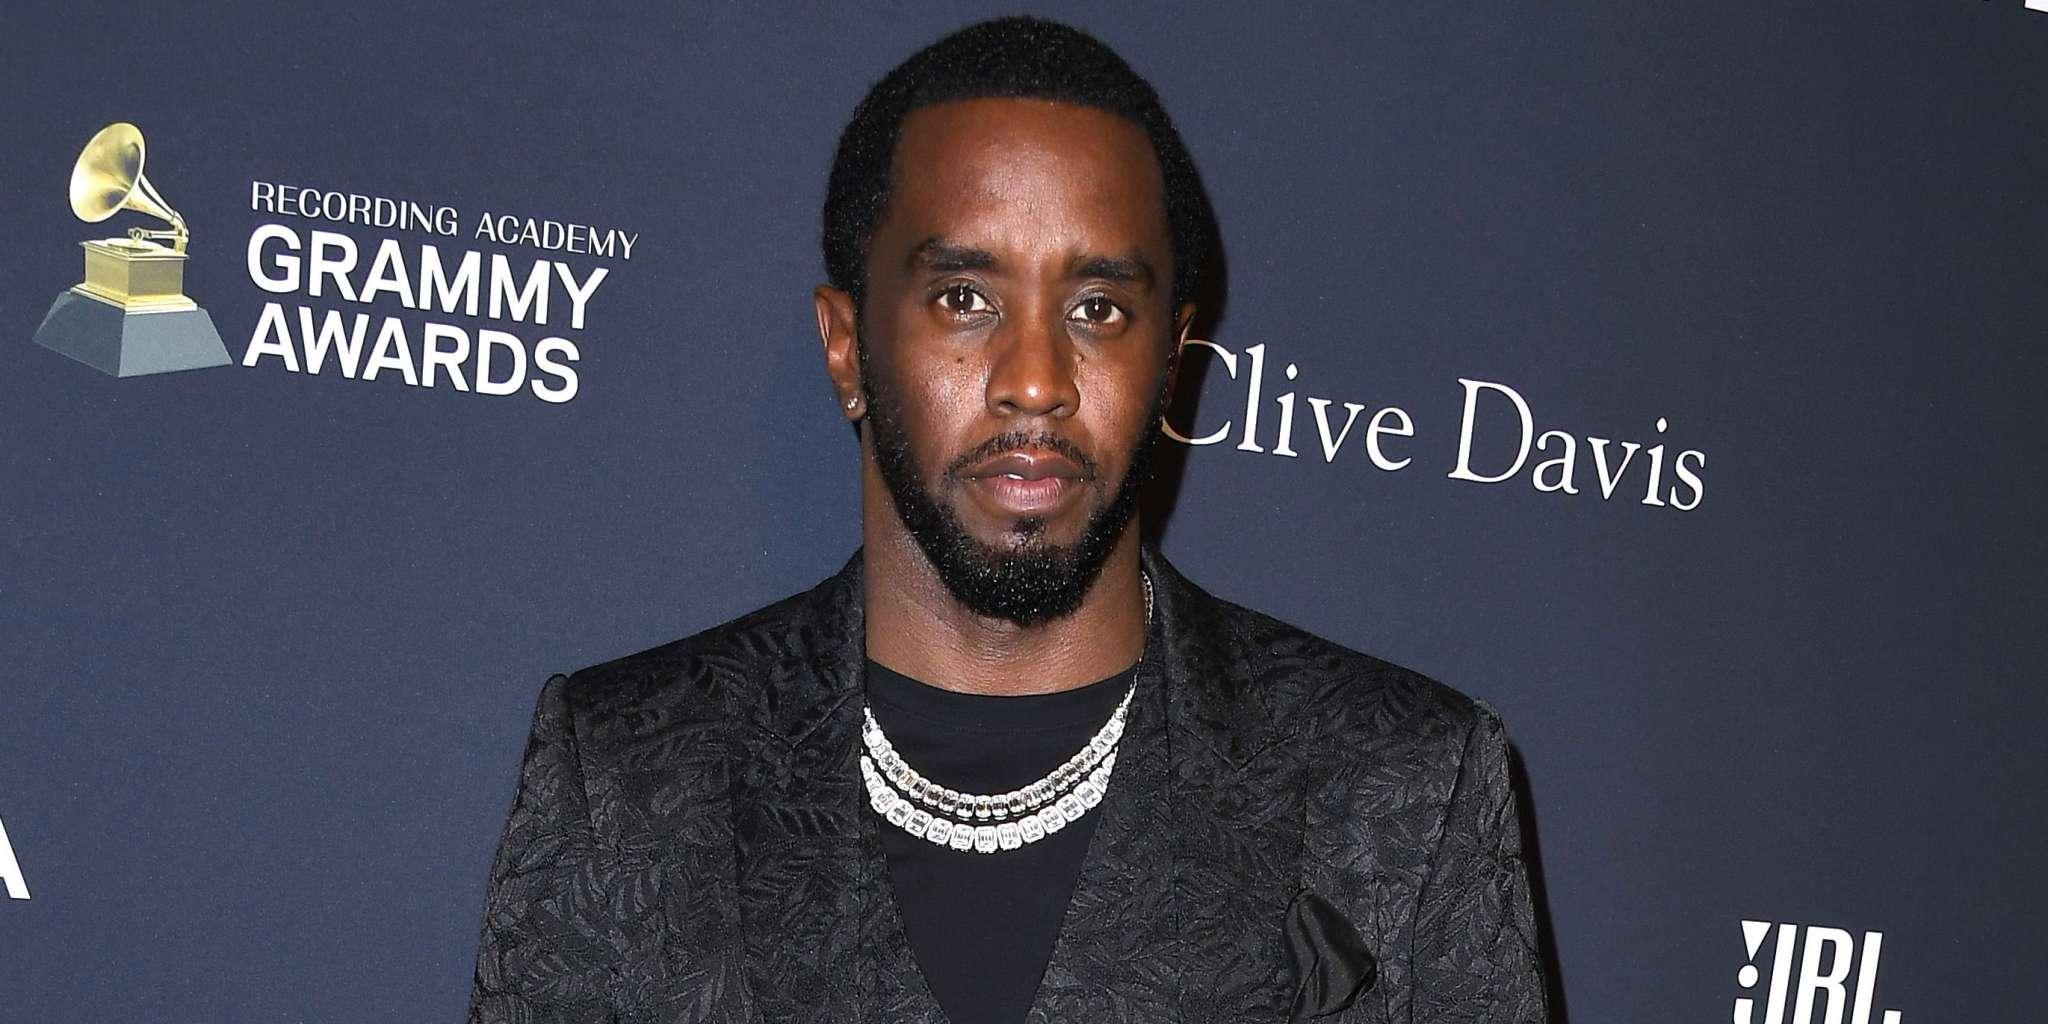 Diddy Gives Fans An Example Of Great Unity - Check Out The Video That He Posted